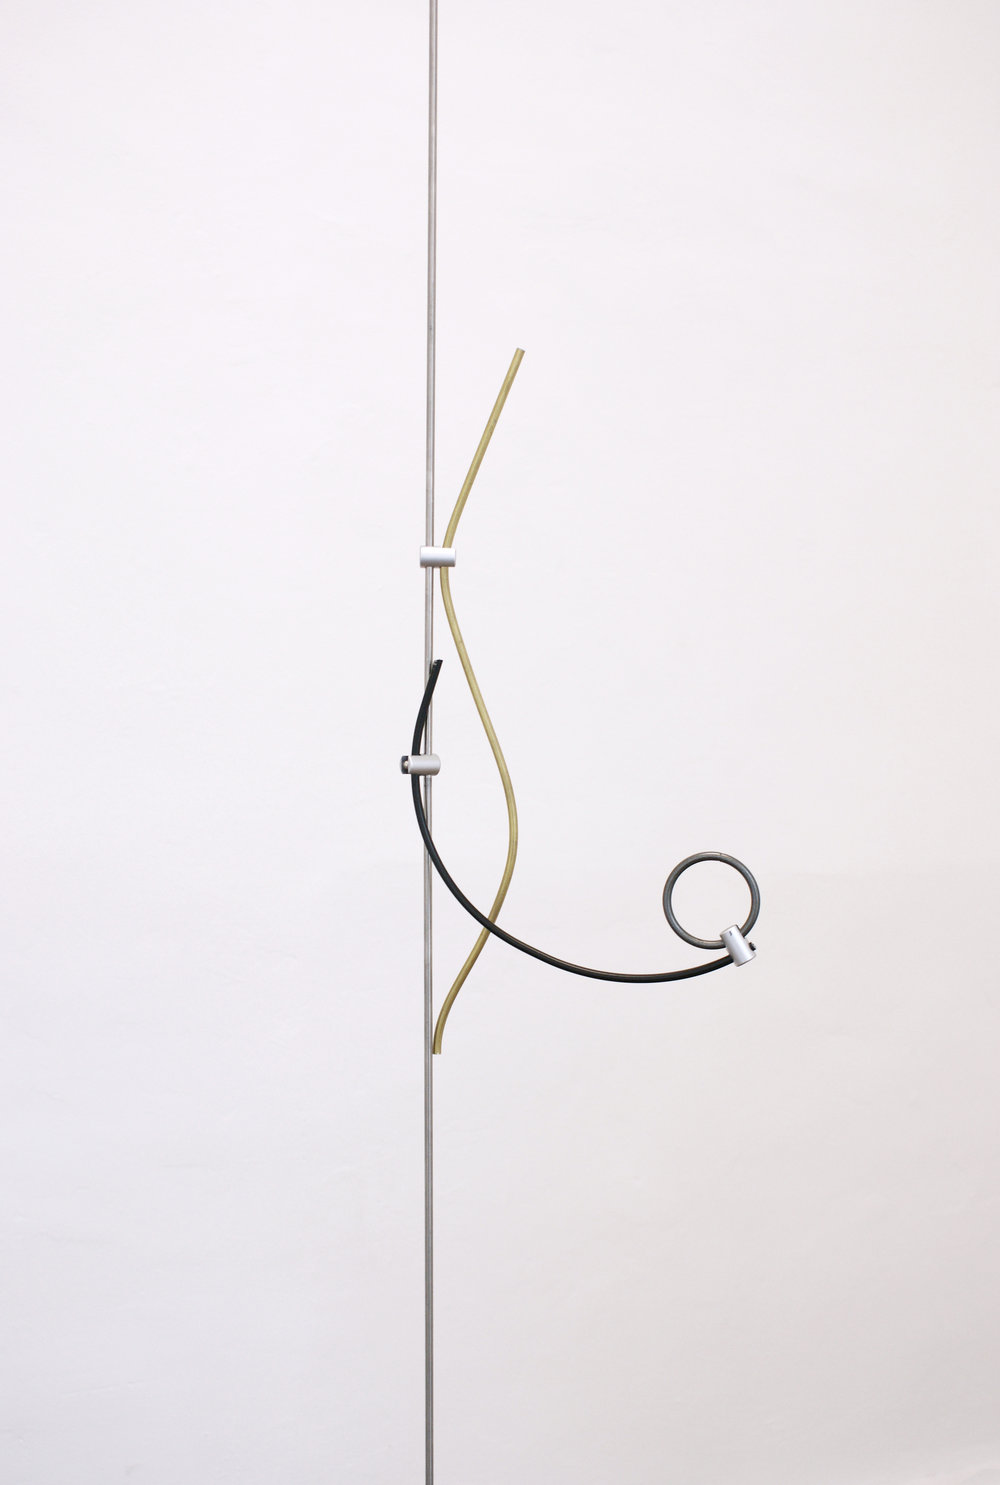 Upright,  rod display system, brass, tea light holder parts, curtain hoop